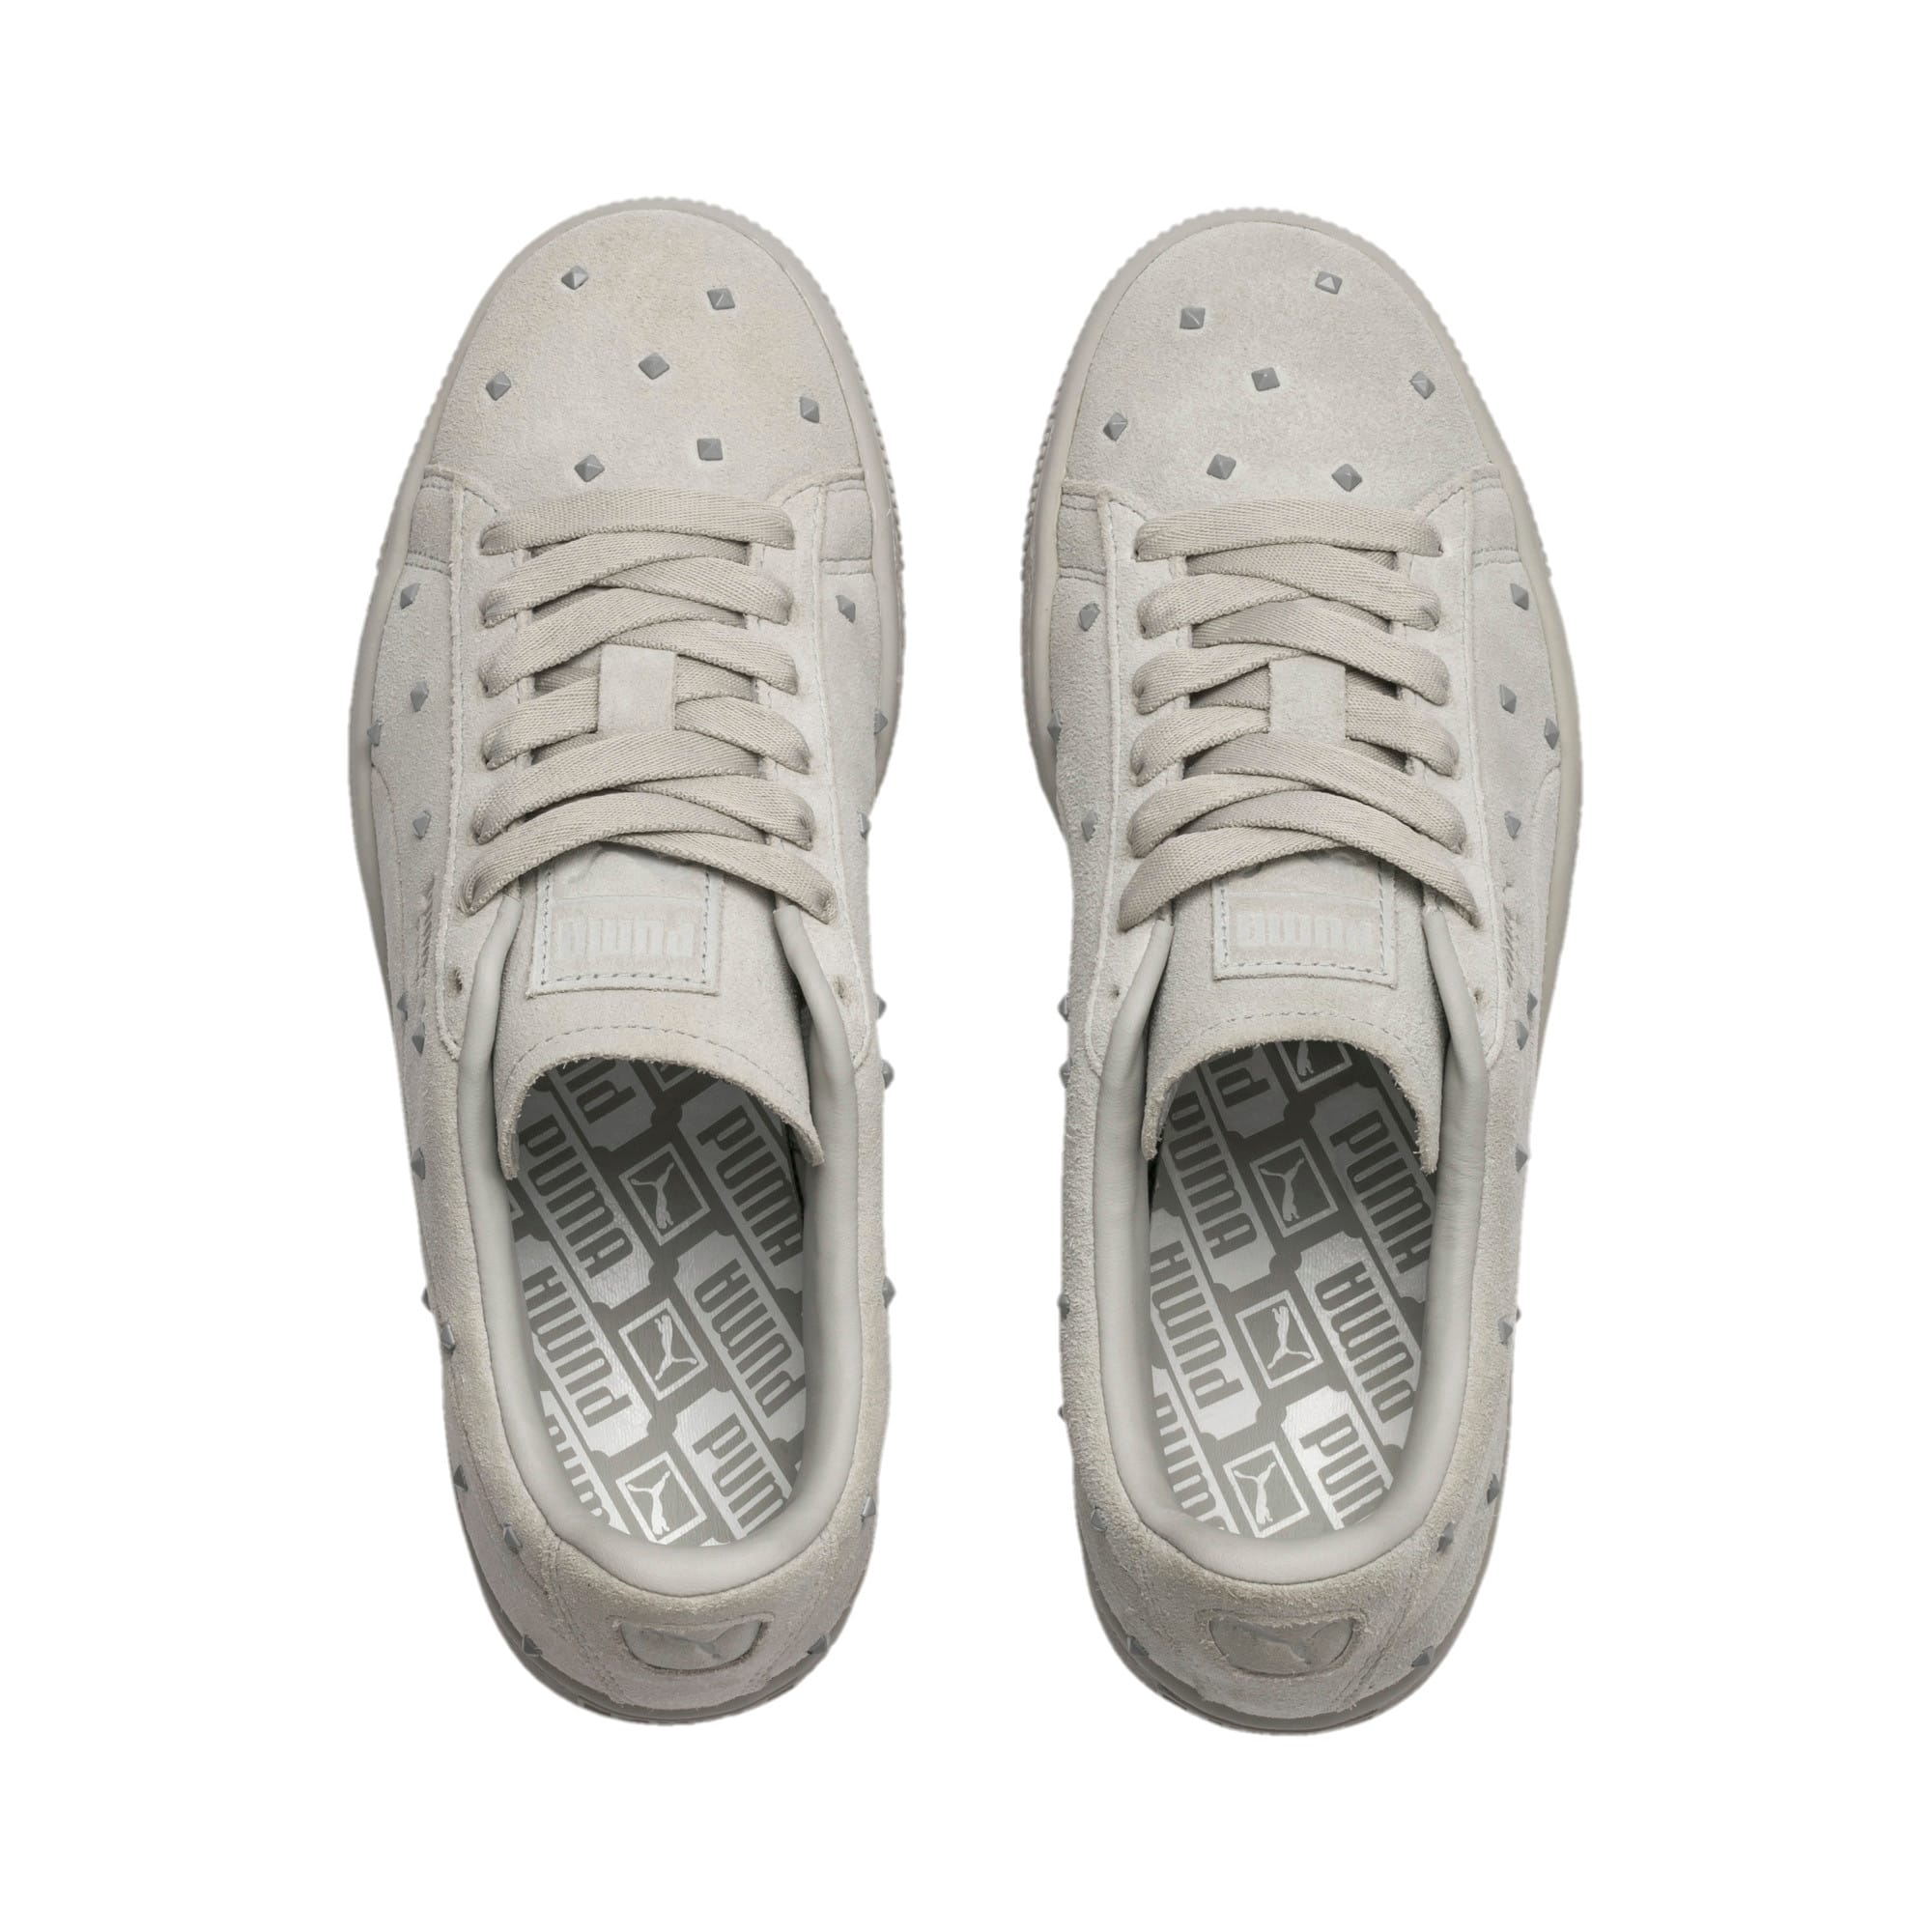 Thumbnail 7 of Suede Studs Women's Trainers, Gray Violet-Puma White, medium